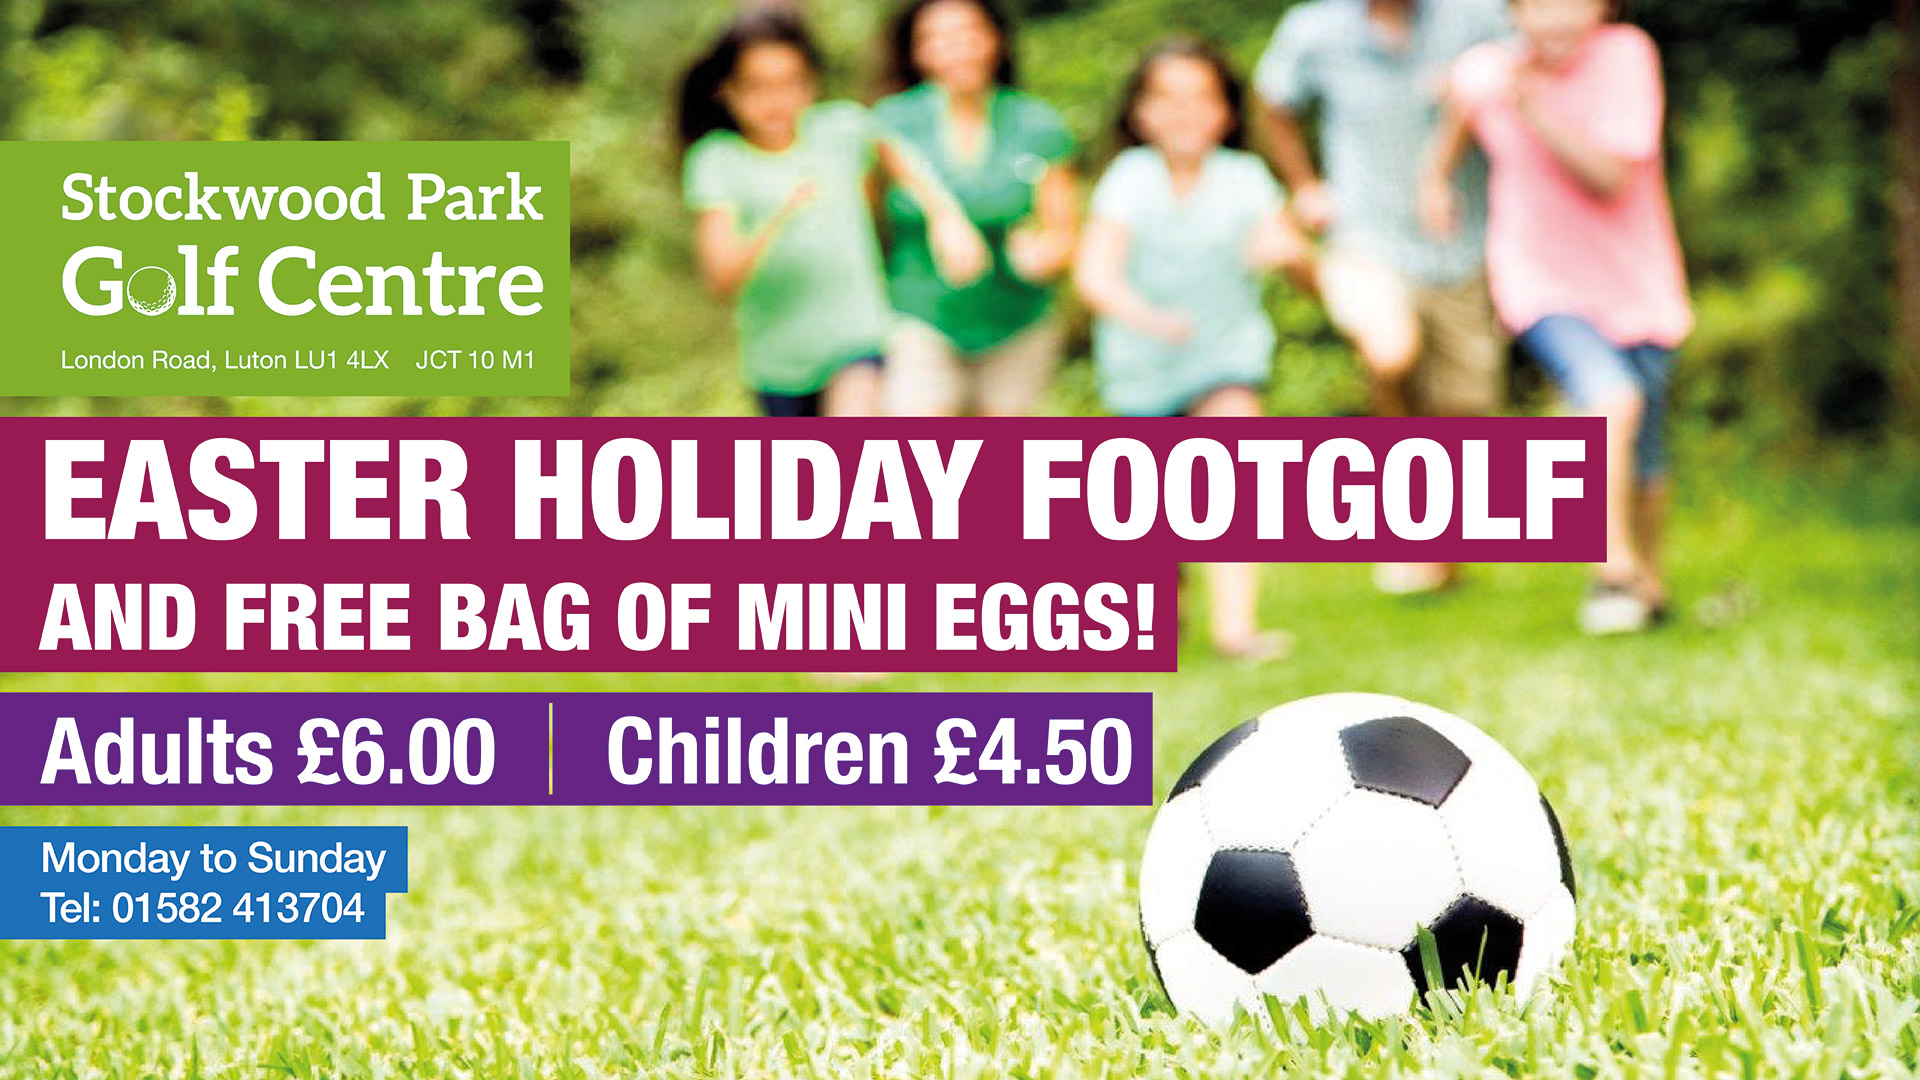 Easter Holiday FootGolf - with FREE mini eggs!